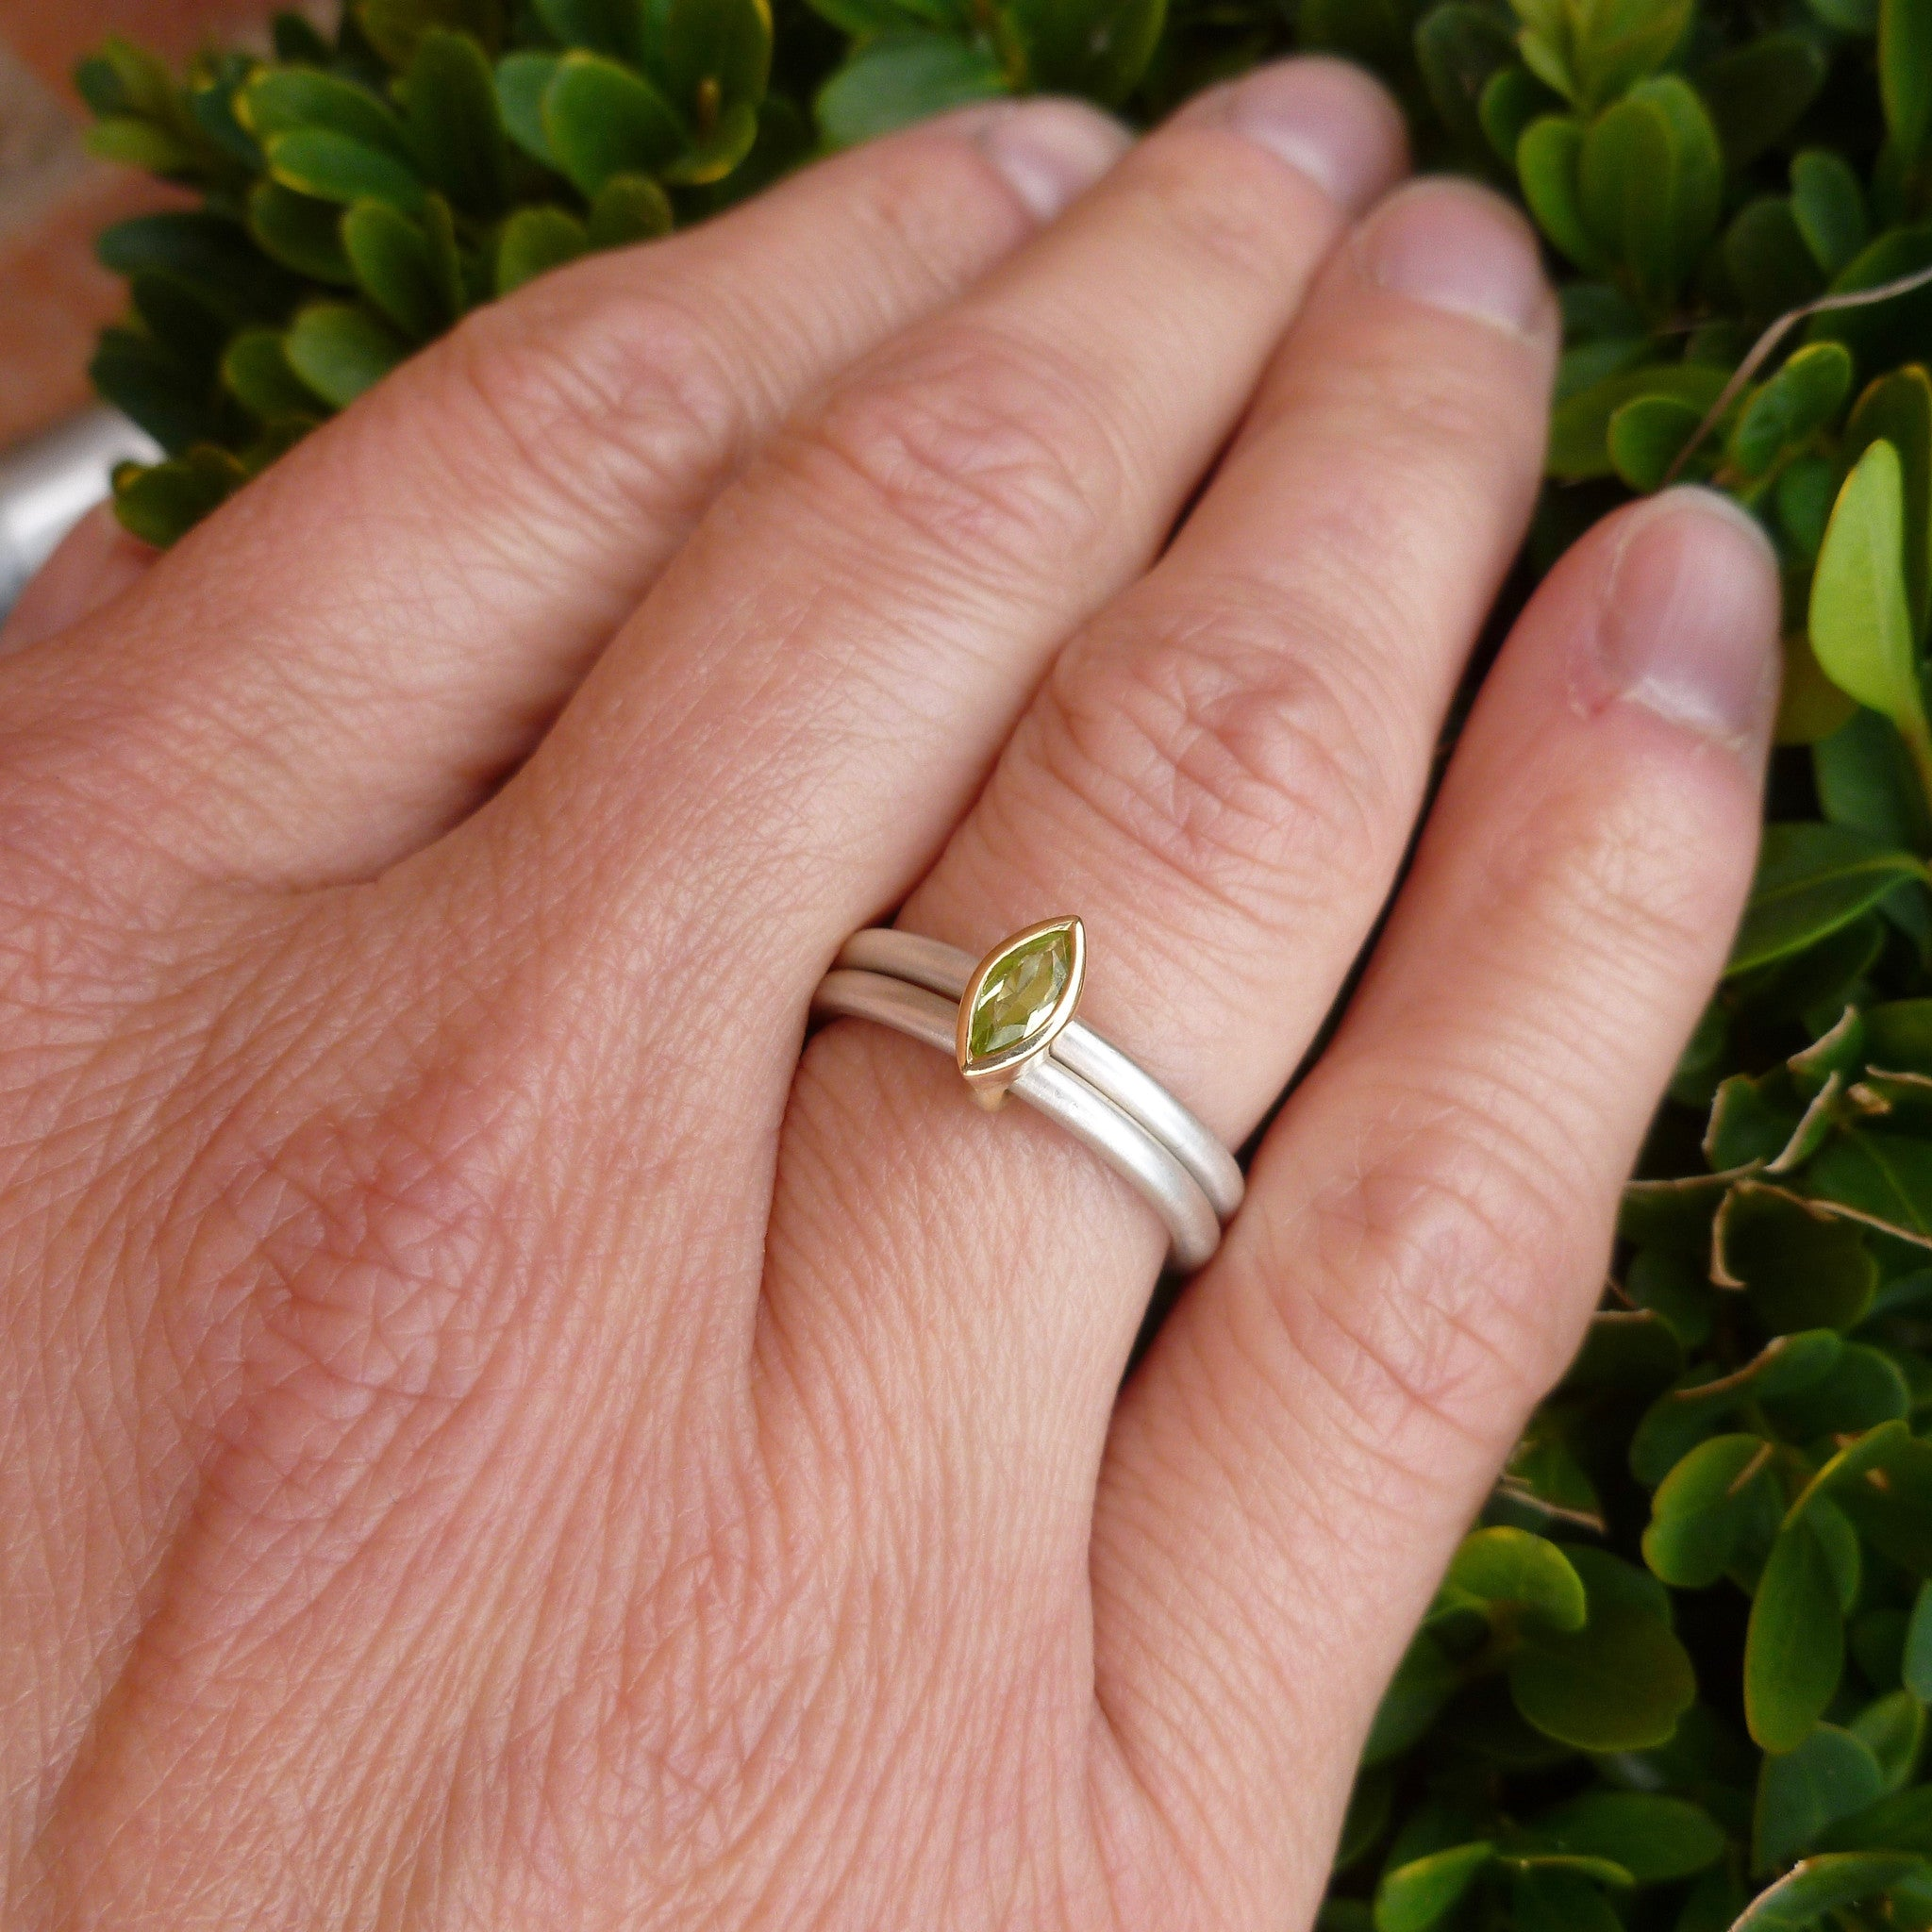 Silver & 18ct gold ring with peridot - contemporary, modern & unique